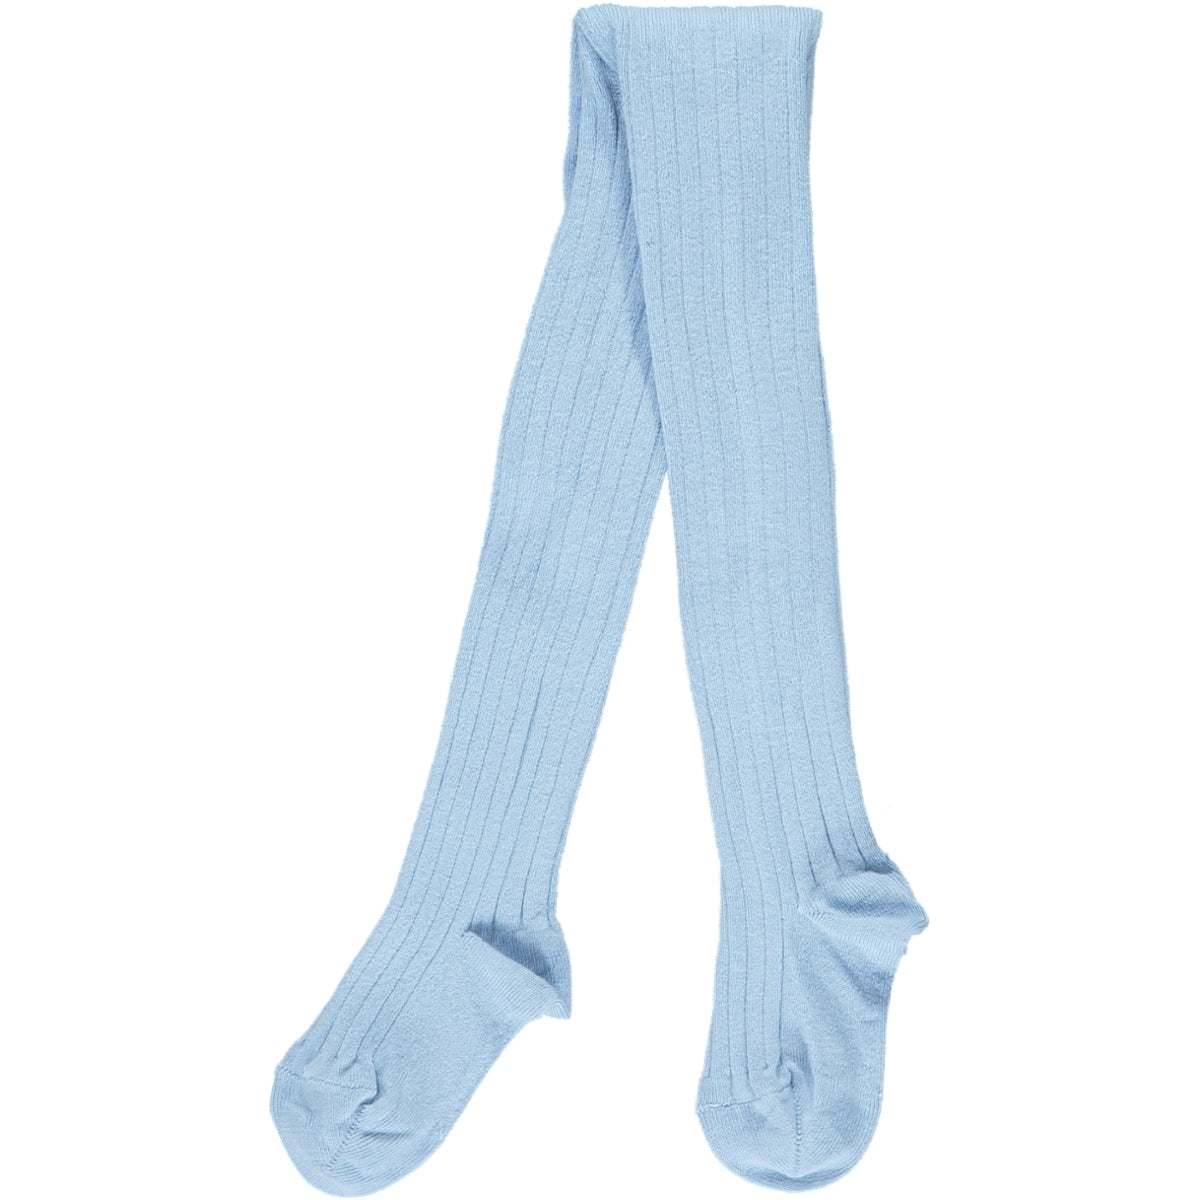 RIBBED TIGHTS - BABY BLUE